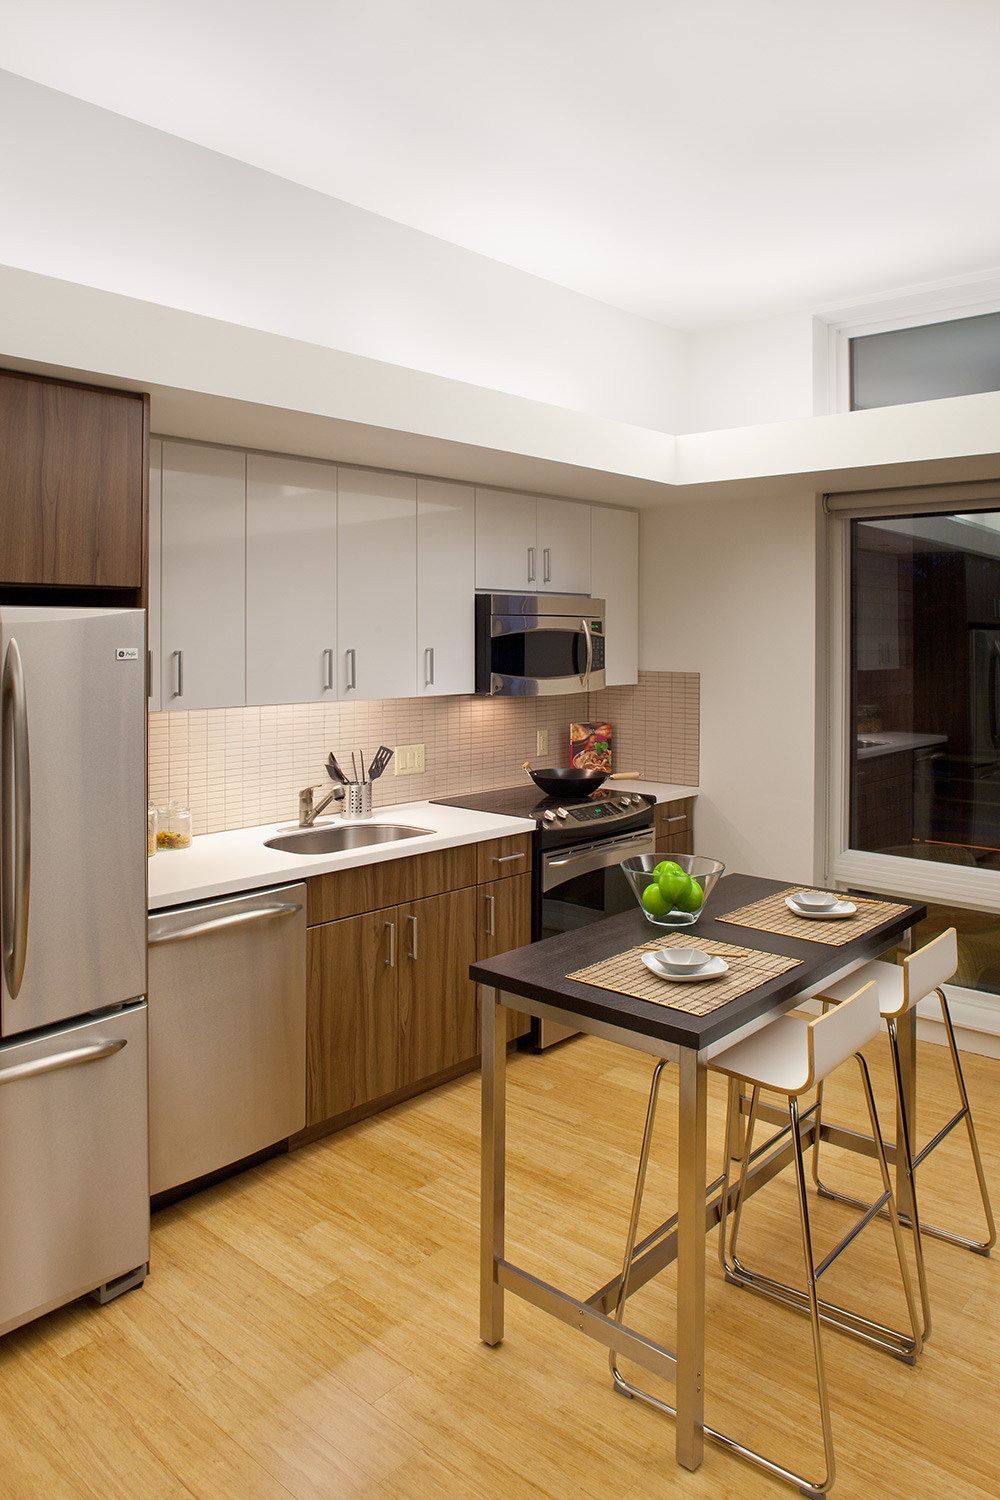 7_KStation-JoshPartee-1807-kitchen-night.jpg